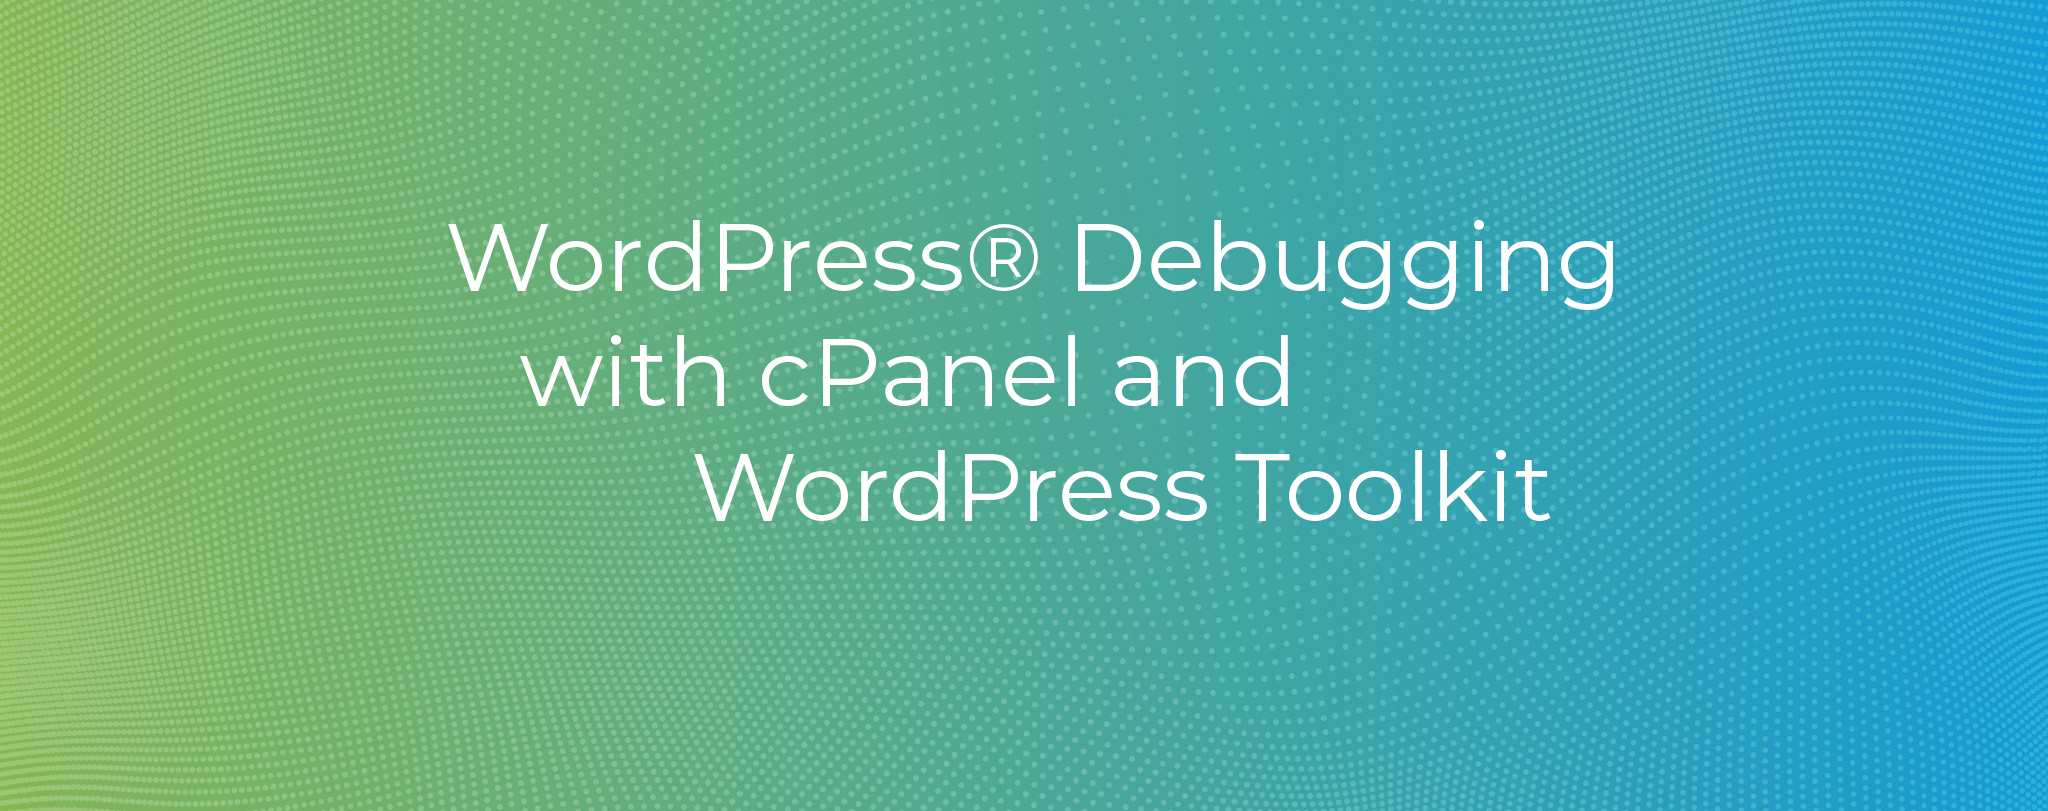 WordPress Debugging with cPanel and WordPress Toolkit